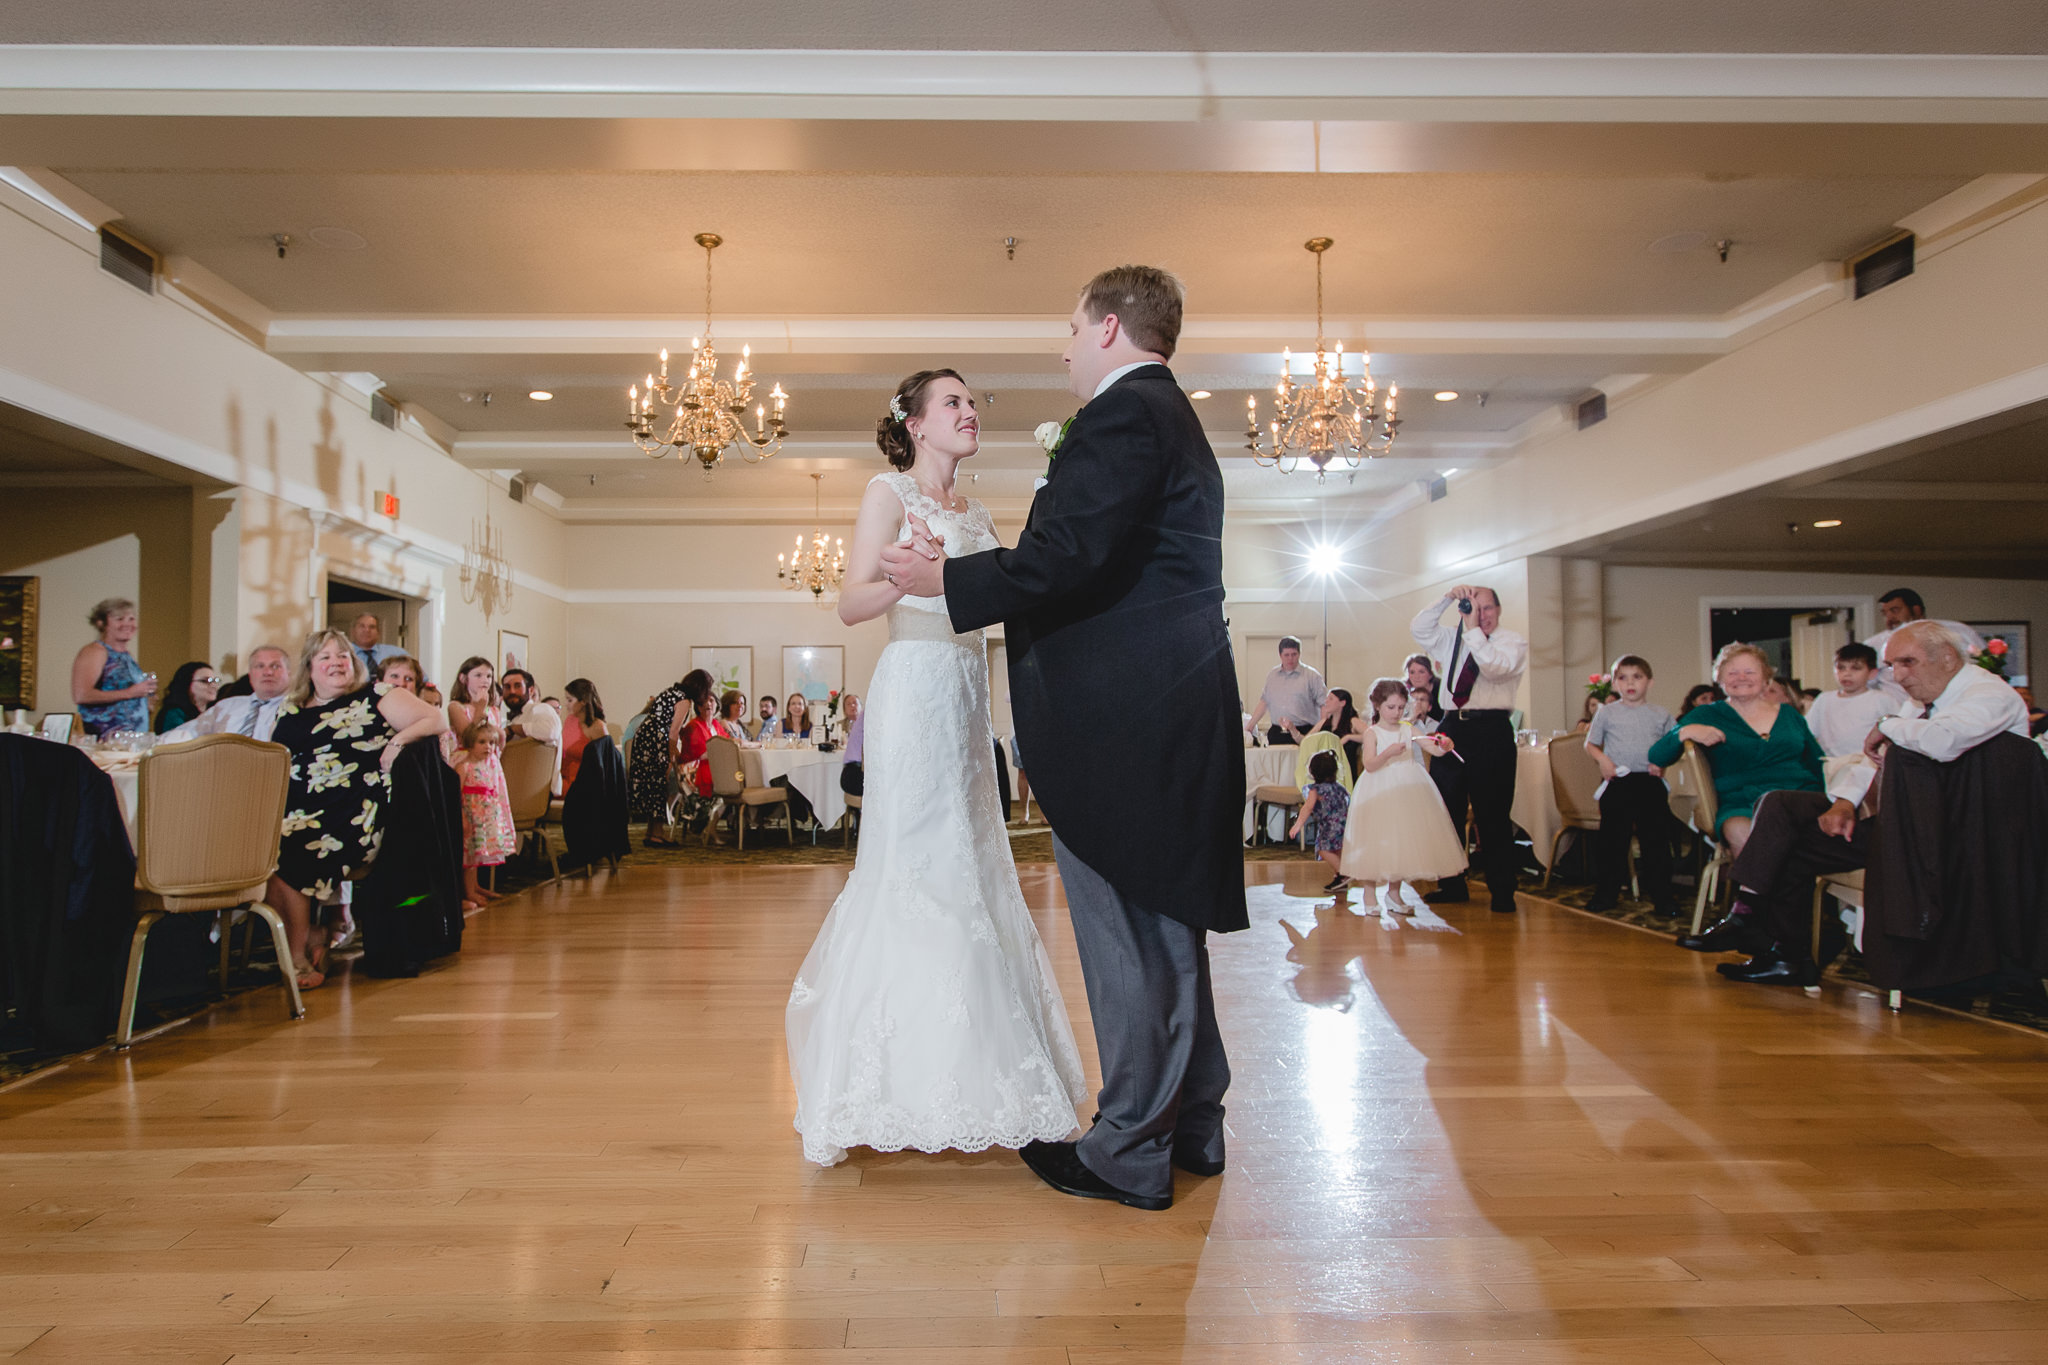 Choreographed first dance at Shannopin Country Club wedding reception